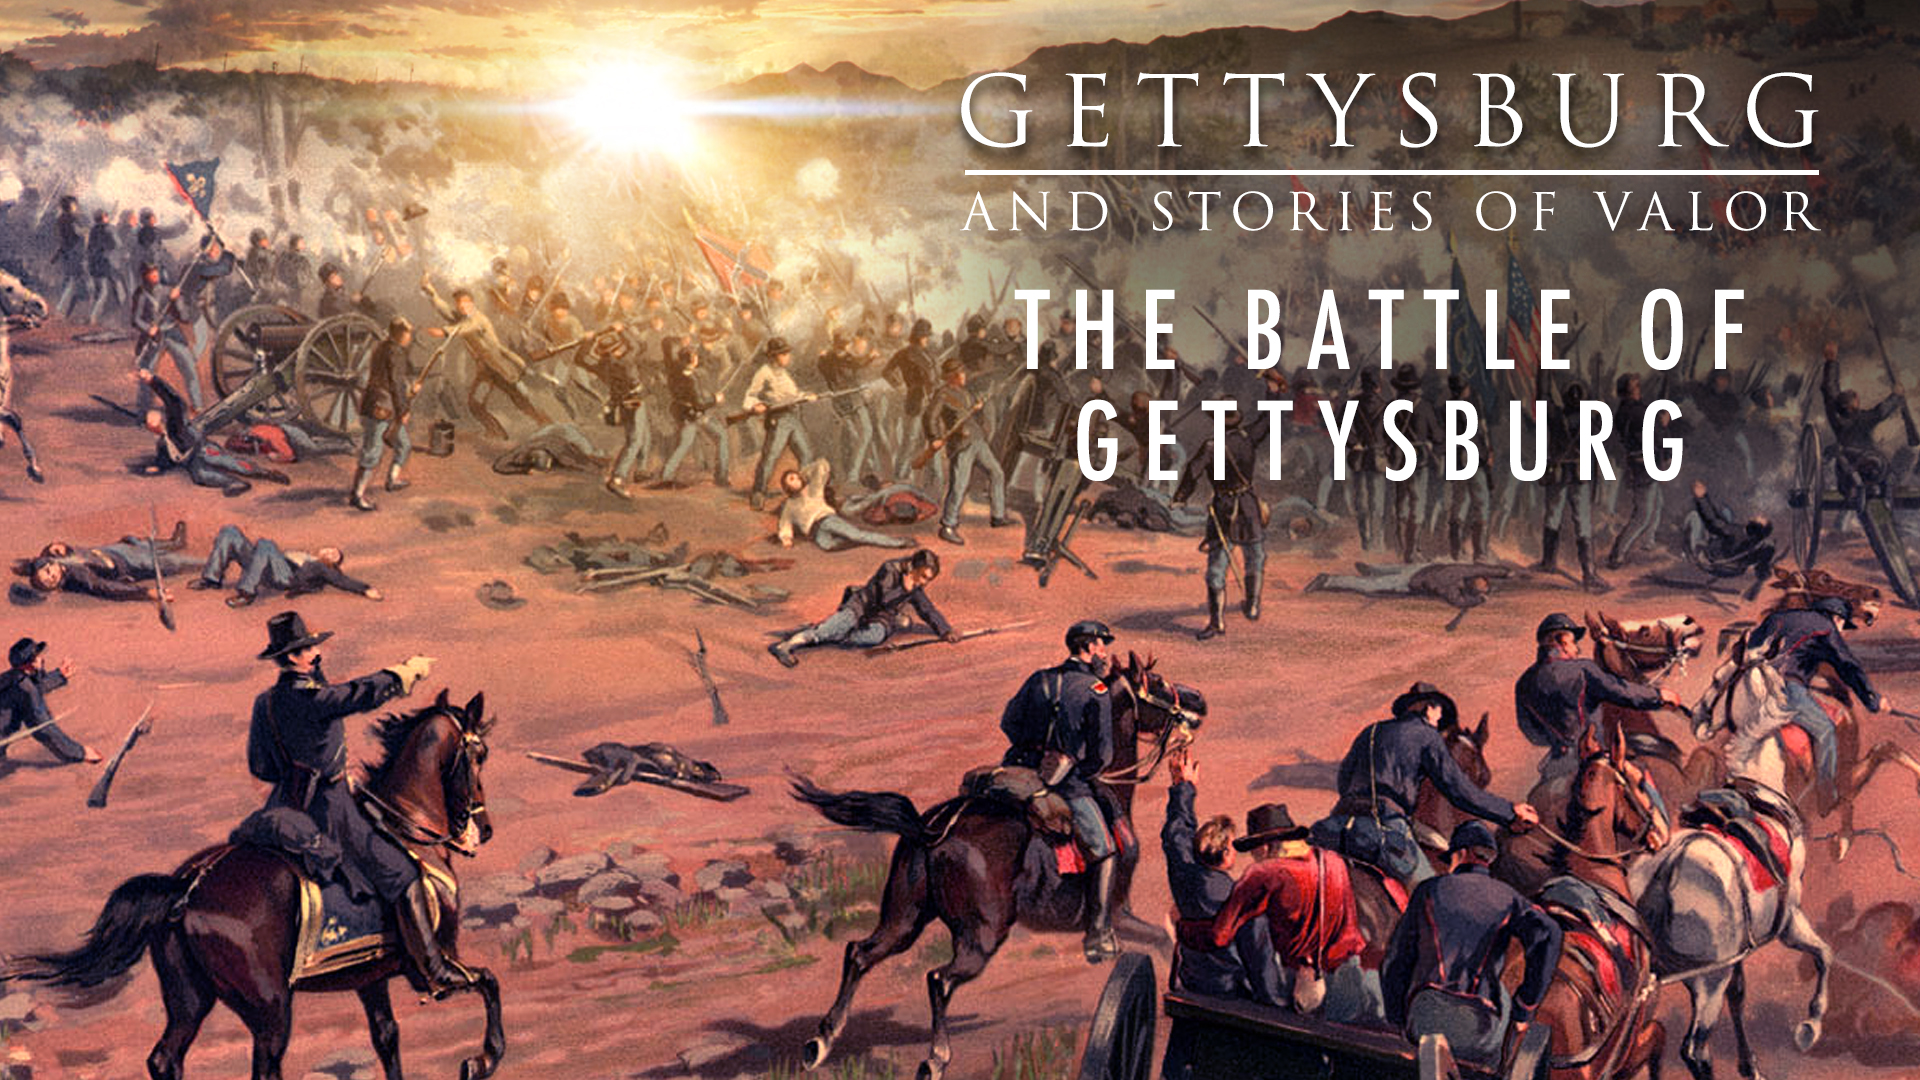 Gettysburg and Stories of Valor - The Battle of Gettysburg